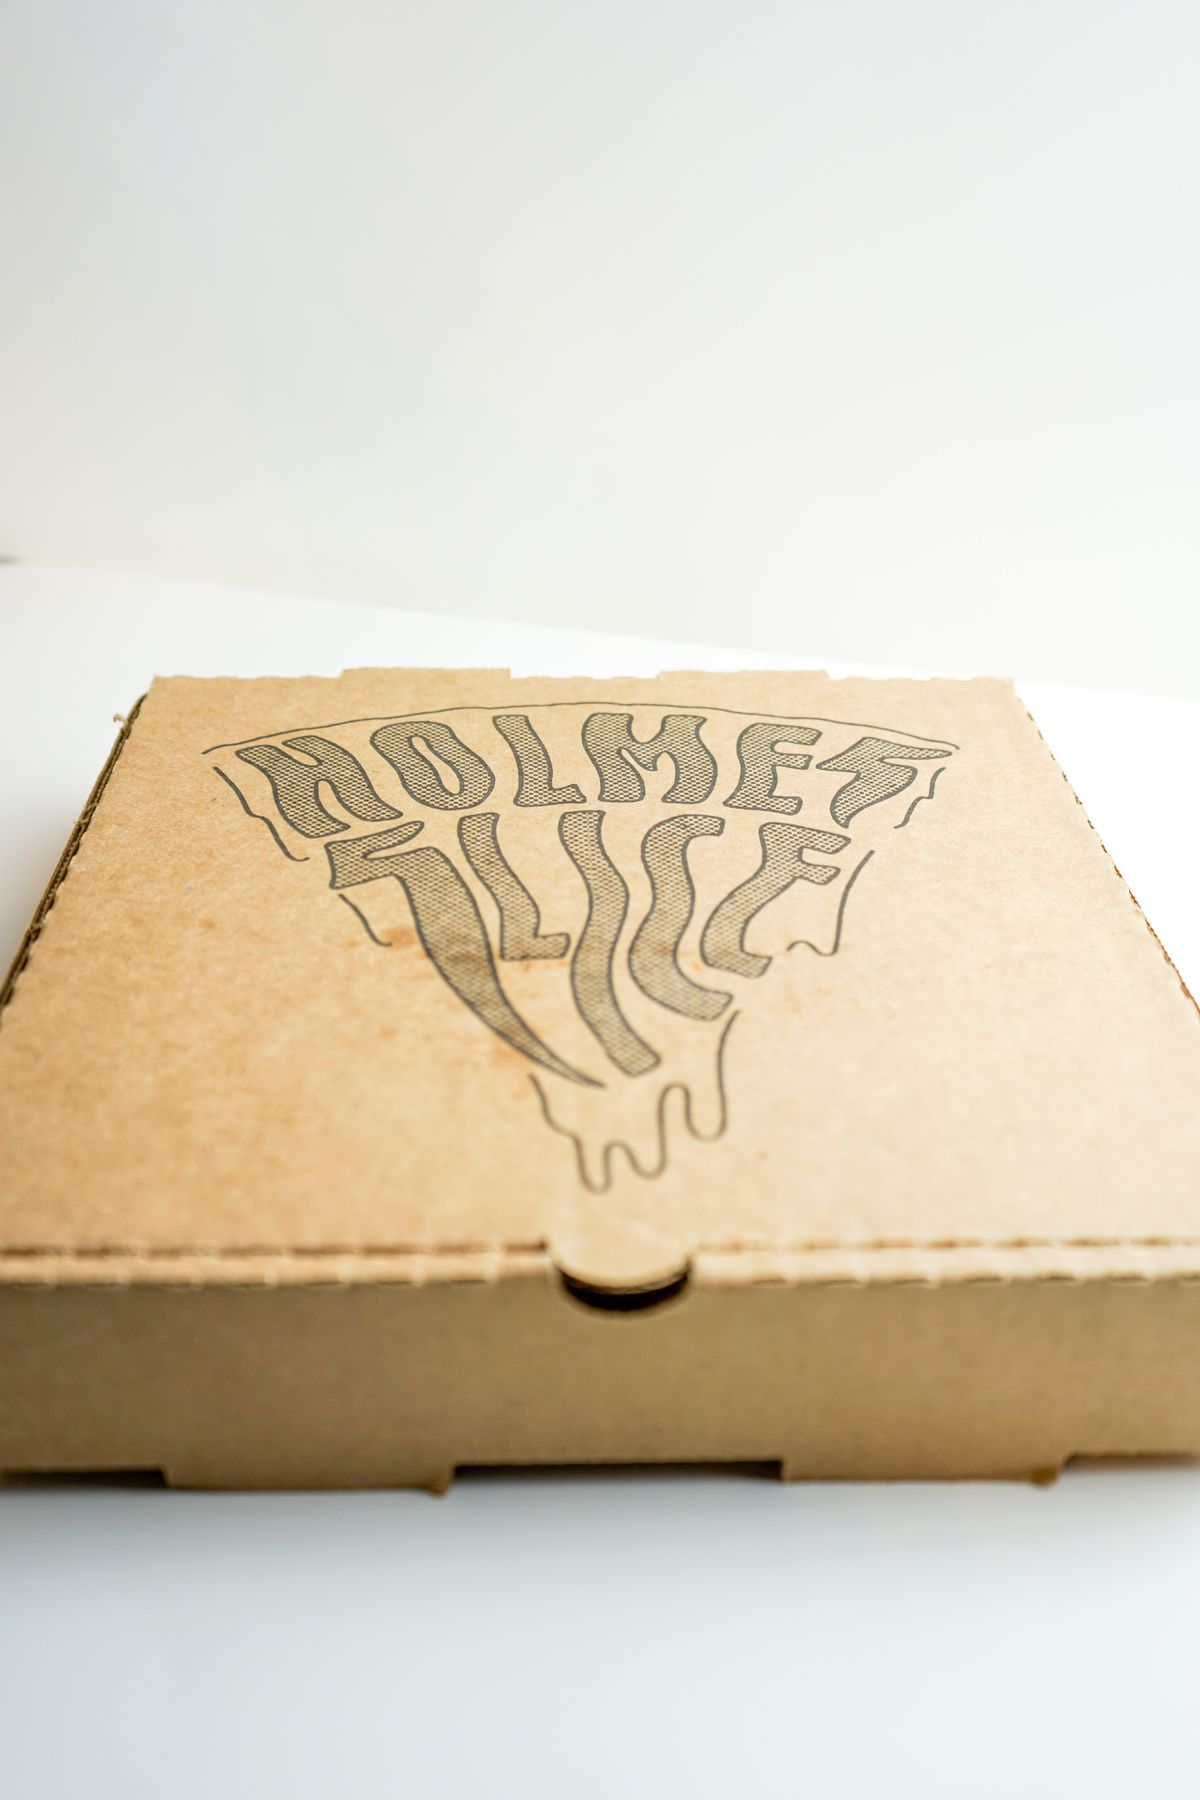 Closed carryout pizza box with the Holmes Slice logo forming a pizza slice, the word Slice is made to look like the letters are dripping down like cheese